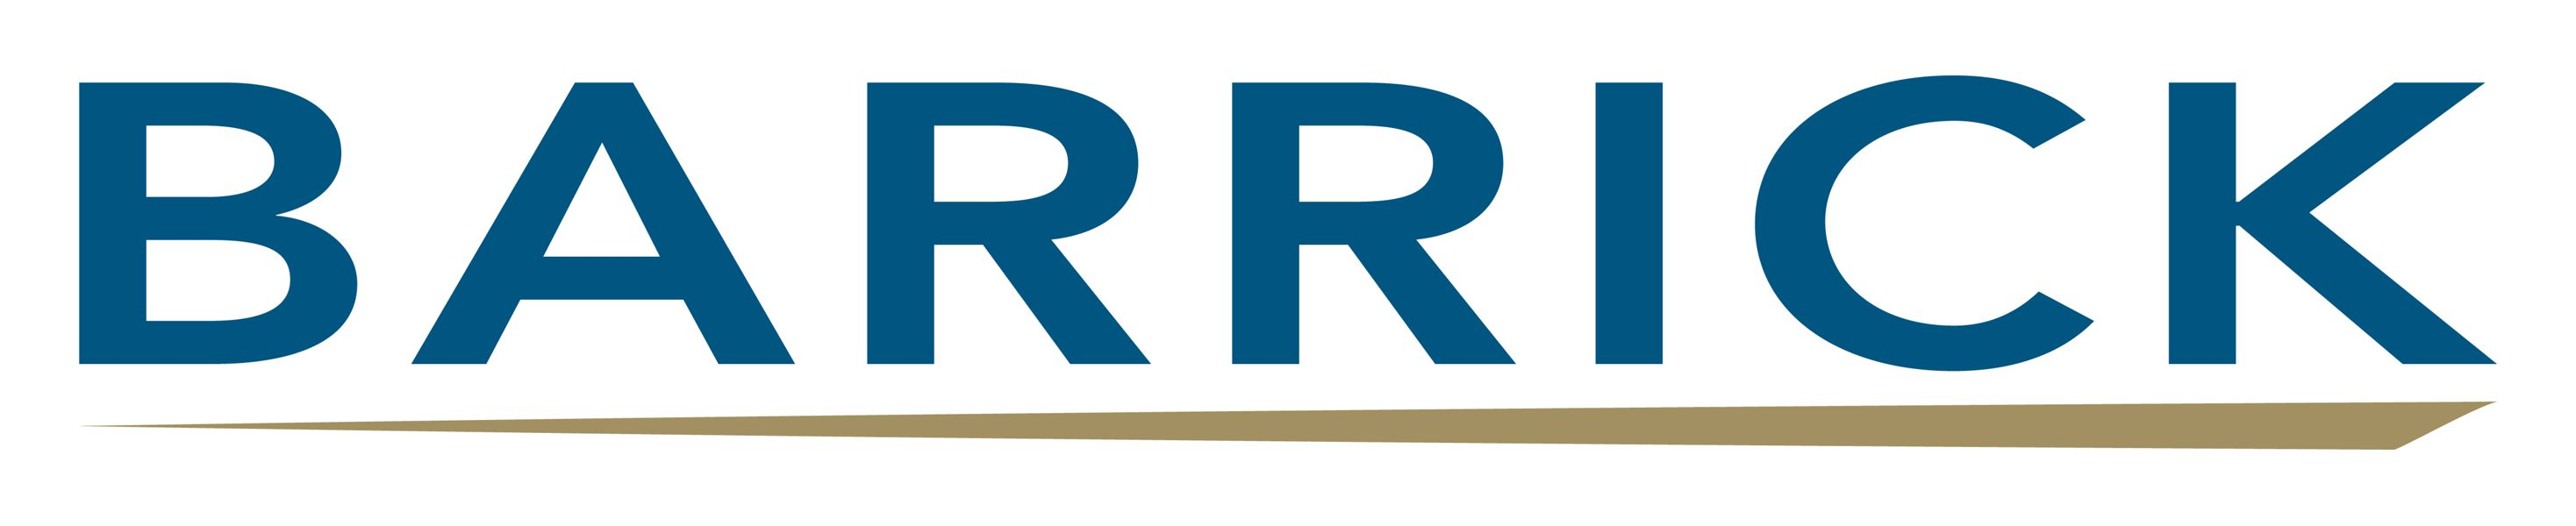 Barrick Achieves 2020 Production Targets